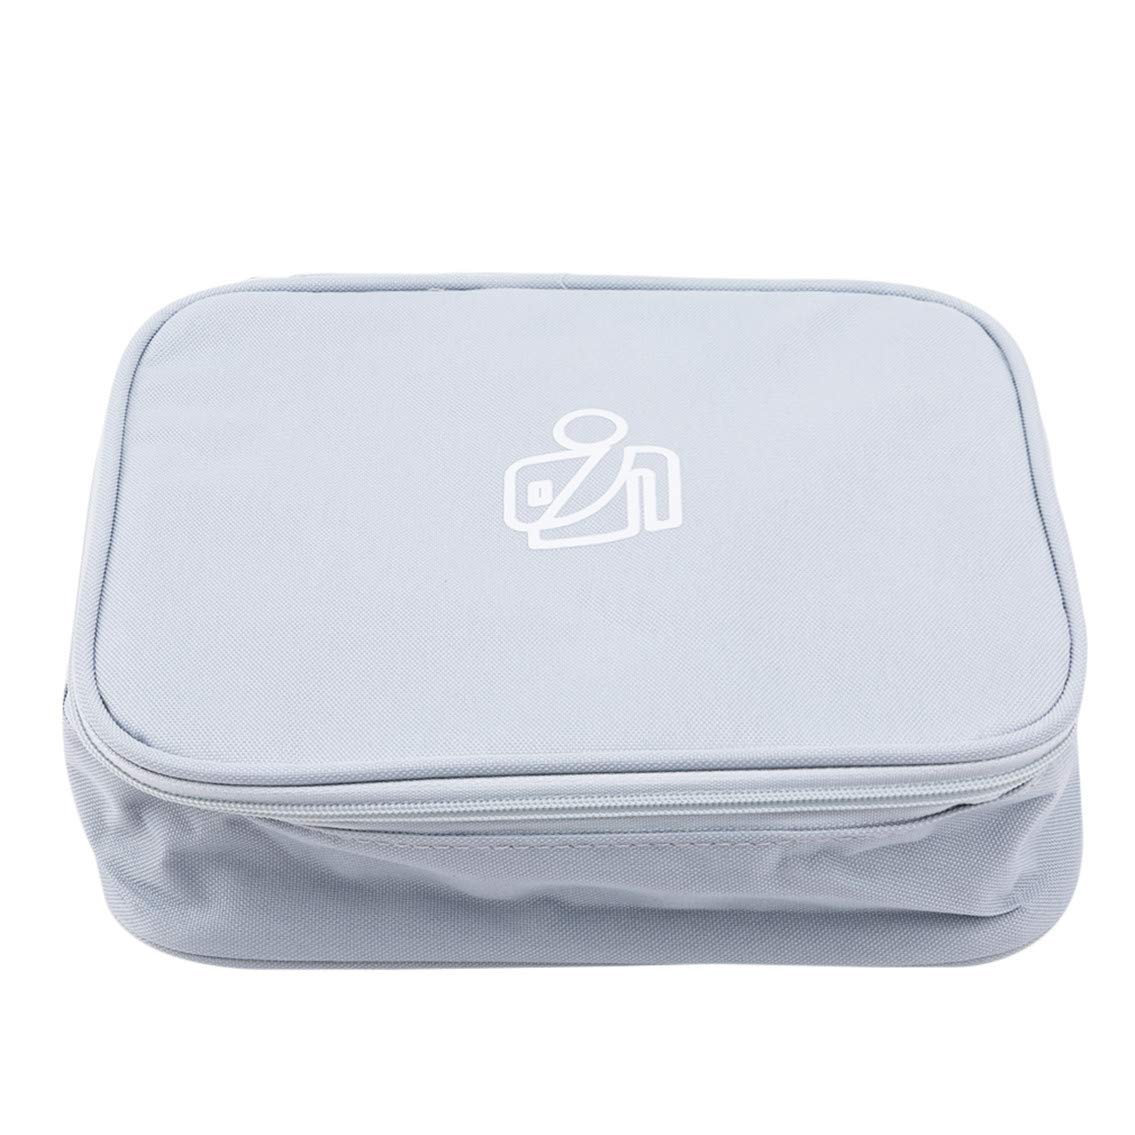 Hengxingwf Convenient And Practical Simple First Aid Kit Family Multi-function First Aid Kit Travel Portable Medical Kit